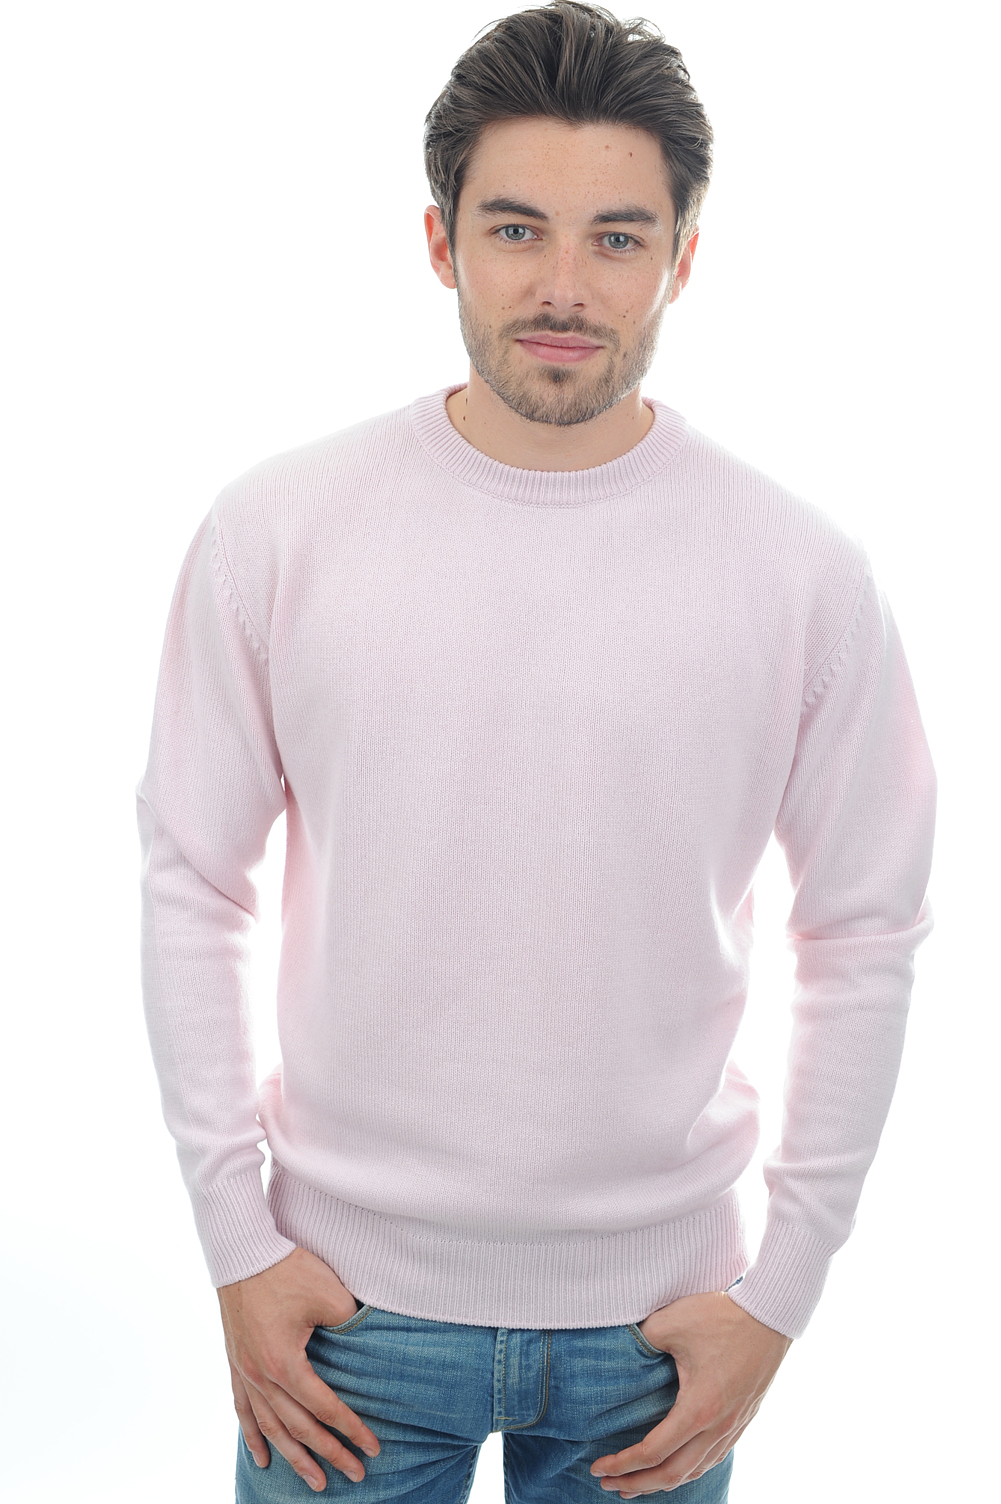 cachemire pull homme col rond nestor 4 fils rose pale m